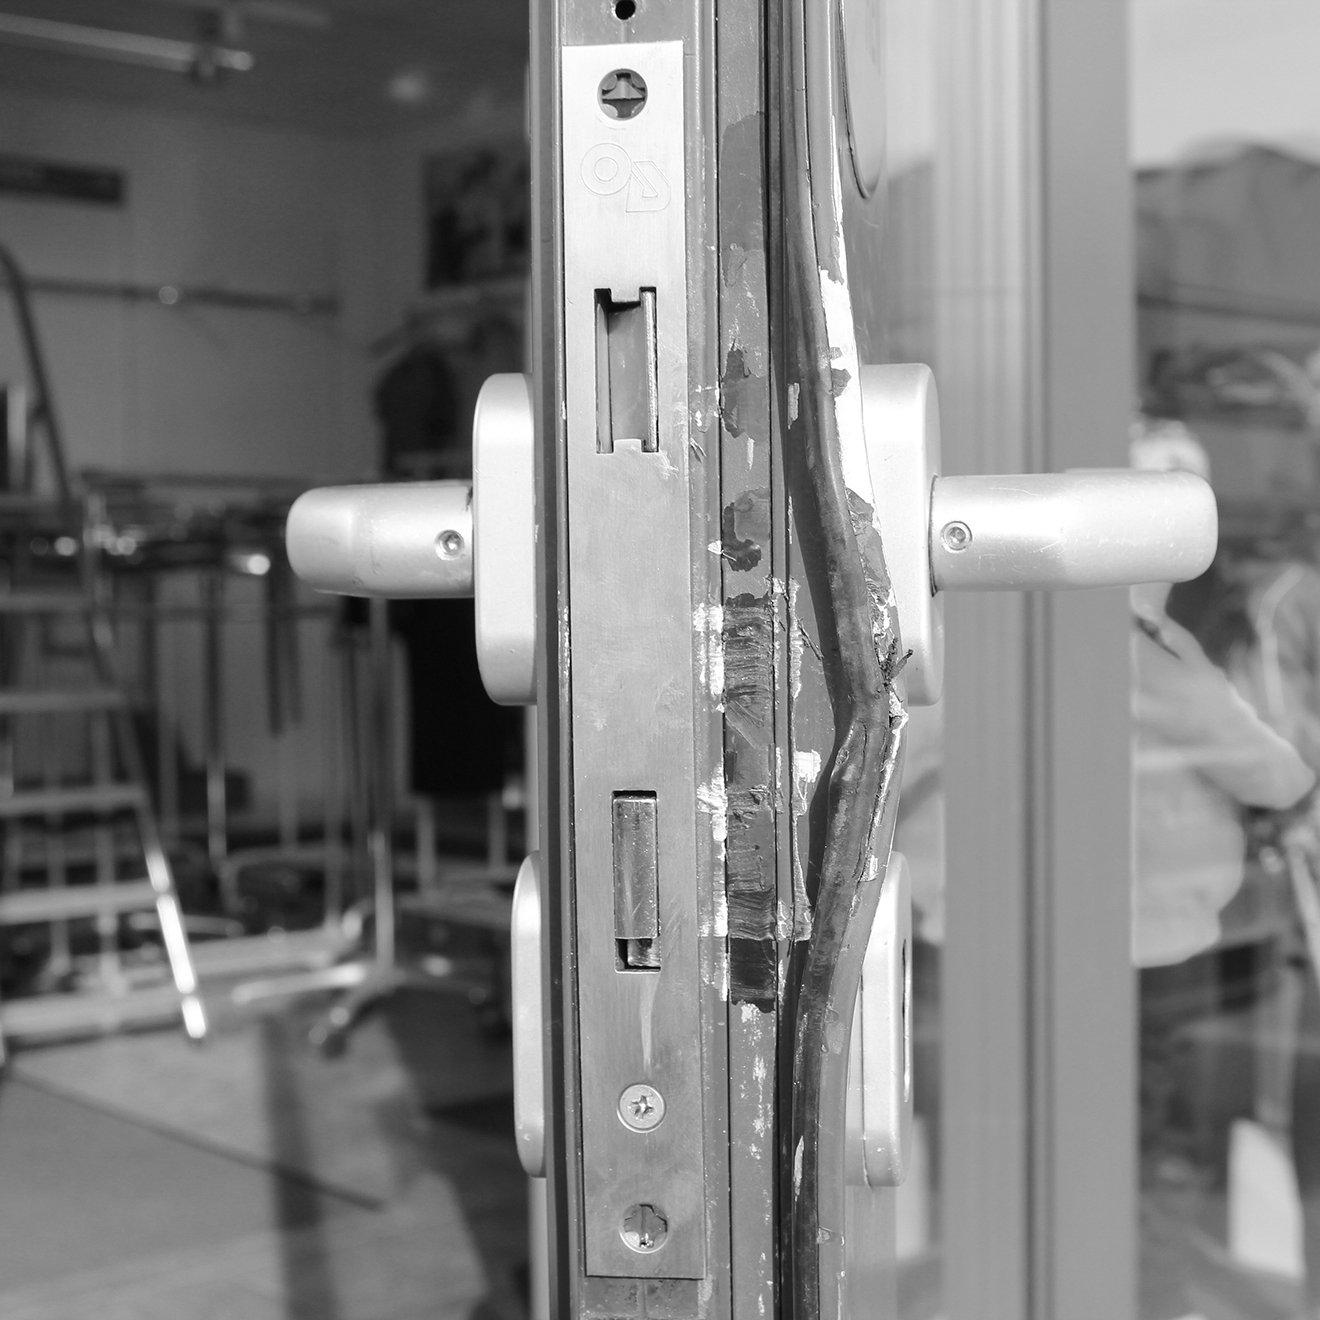 Commercial locksmith Oldham - Cyro Services